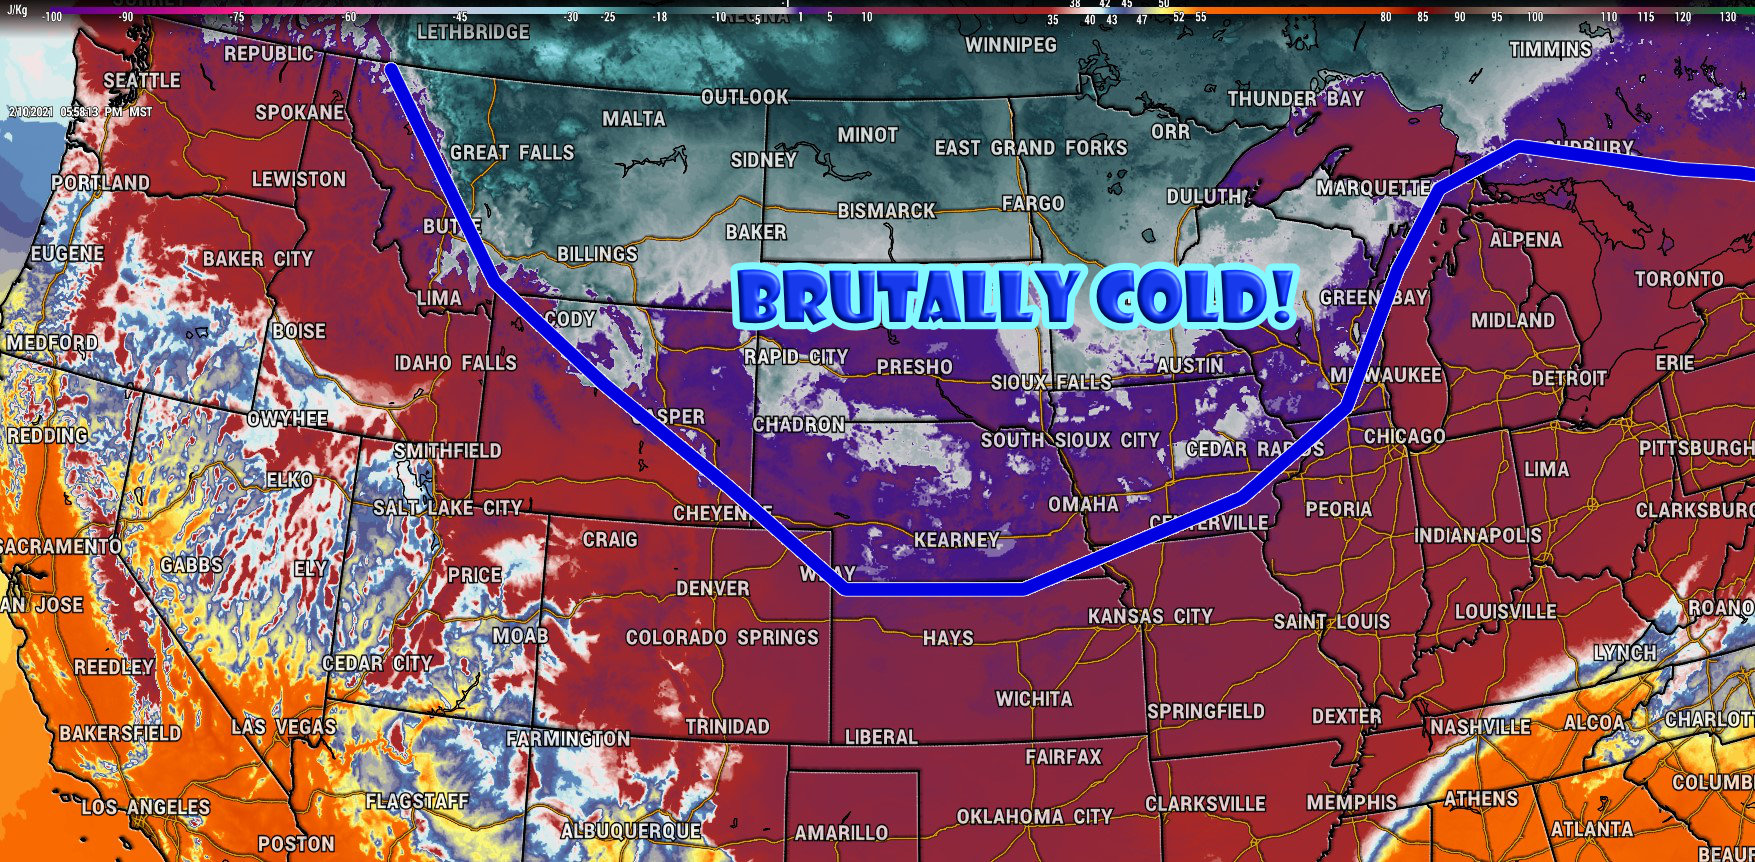 Brutal Cold, Snow on the Way for Weekend